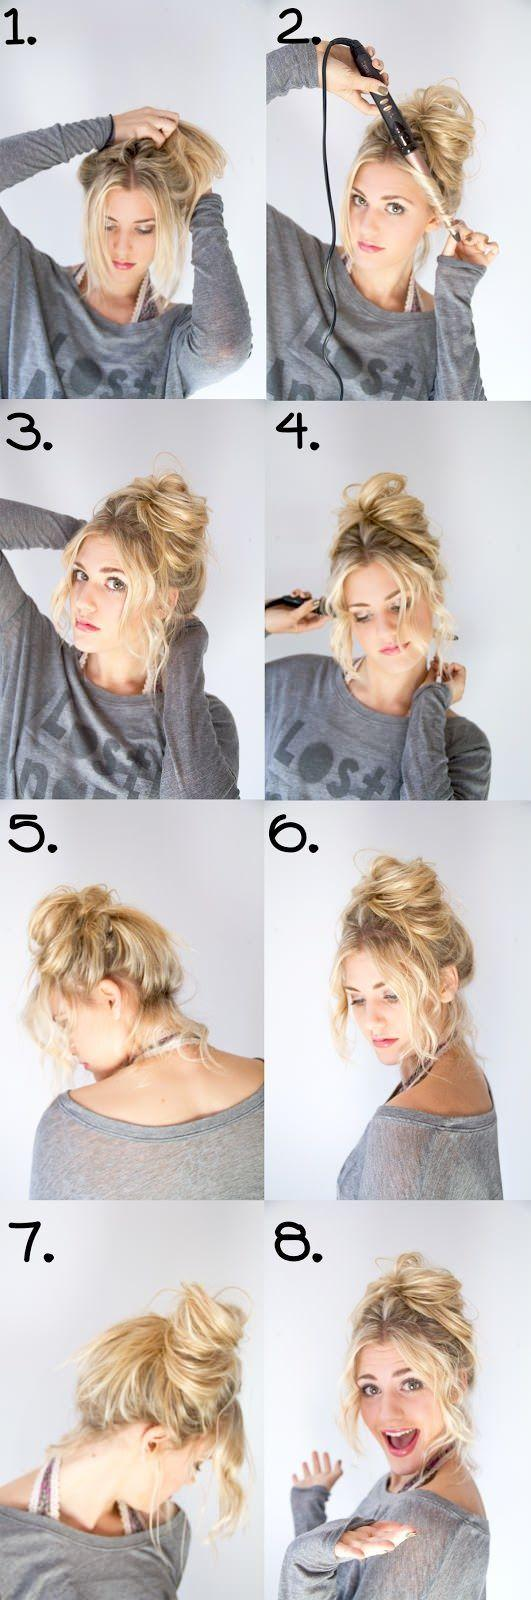 21 Easy Hair Styles To Save You In Hot Summer Days Onedio Co